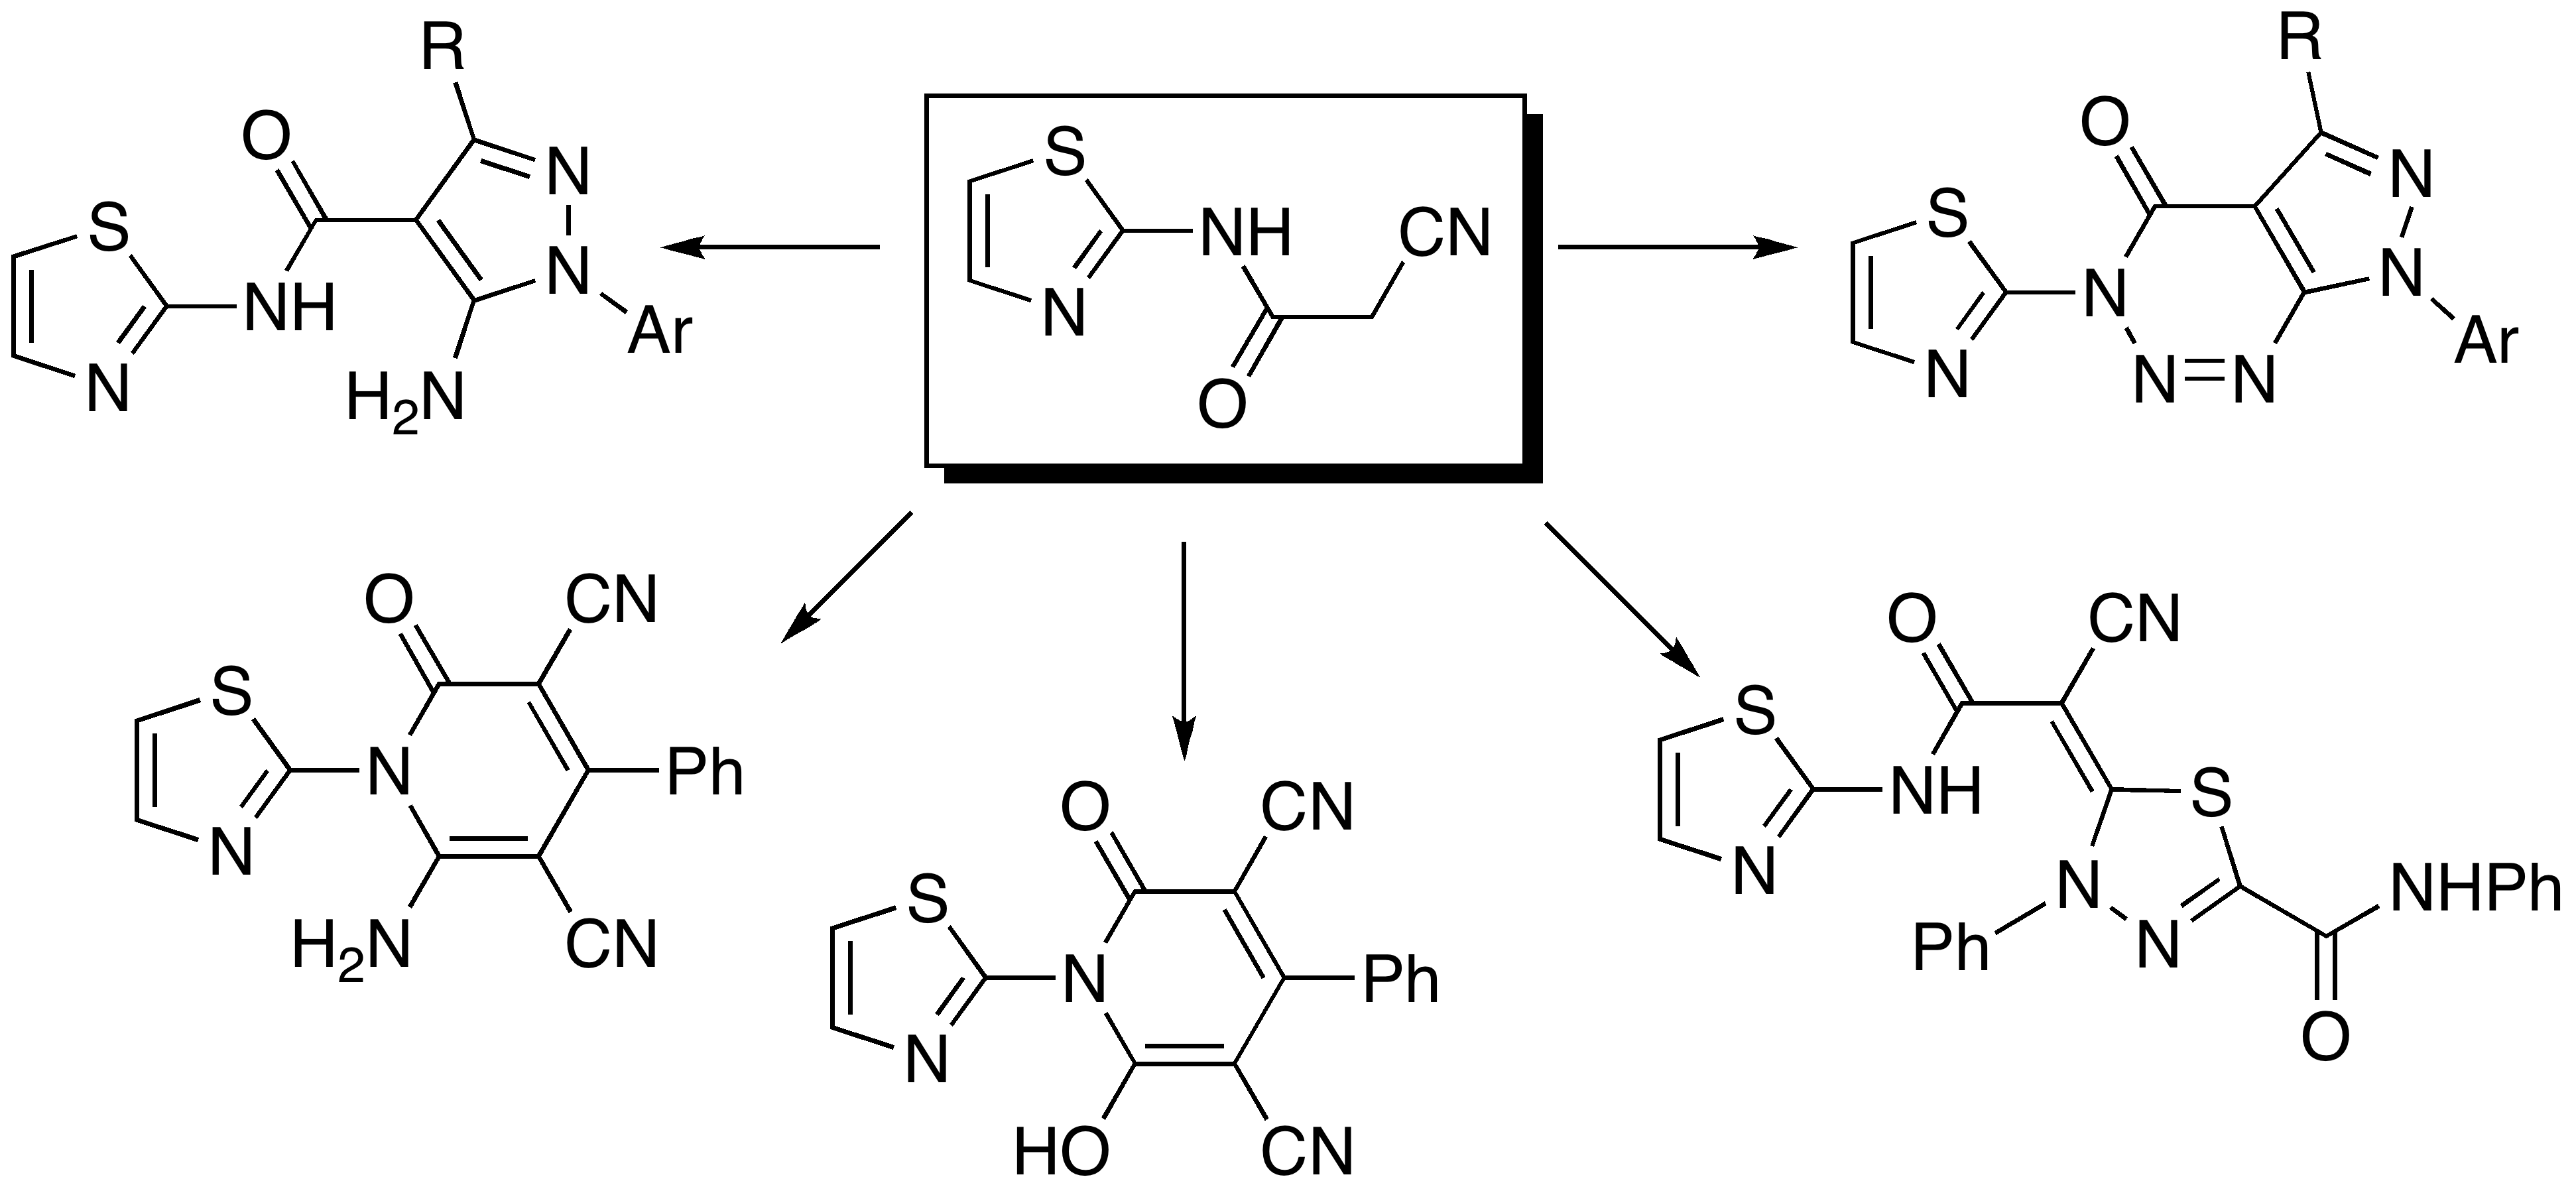 heterocycles as triazine derivatives Cardiotonic, neuroleptic, nootropic, antihistaminergic, tuberculostatic, antiviral, anti-protozoal, estrogen receptor modulators, antimalarial, cyclin-dependent kinase inhibitors, antimicrobial and antiparasitic key words: 1,2,4-triazine derivatives, synthesis, biological activity activities 1 introduction: heterocyclic chemistry is.